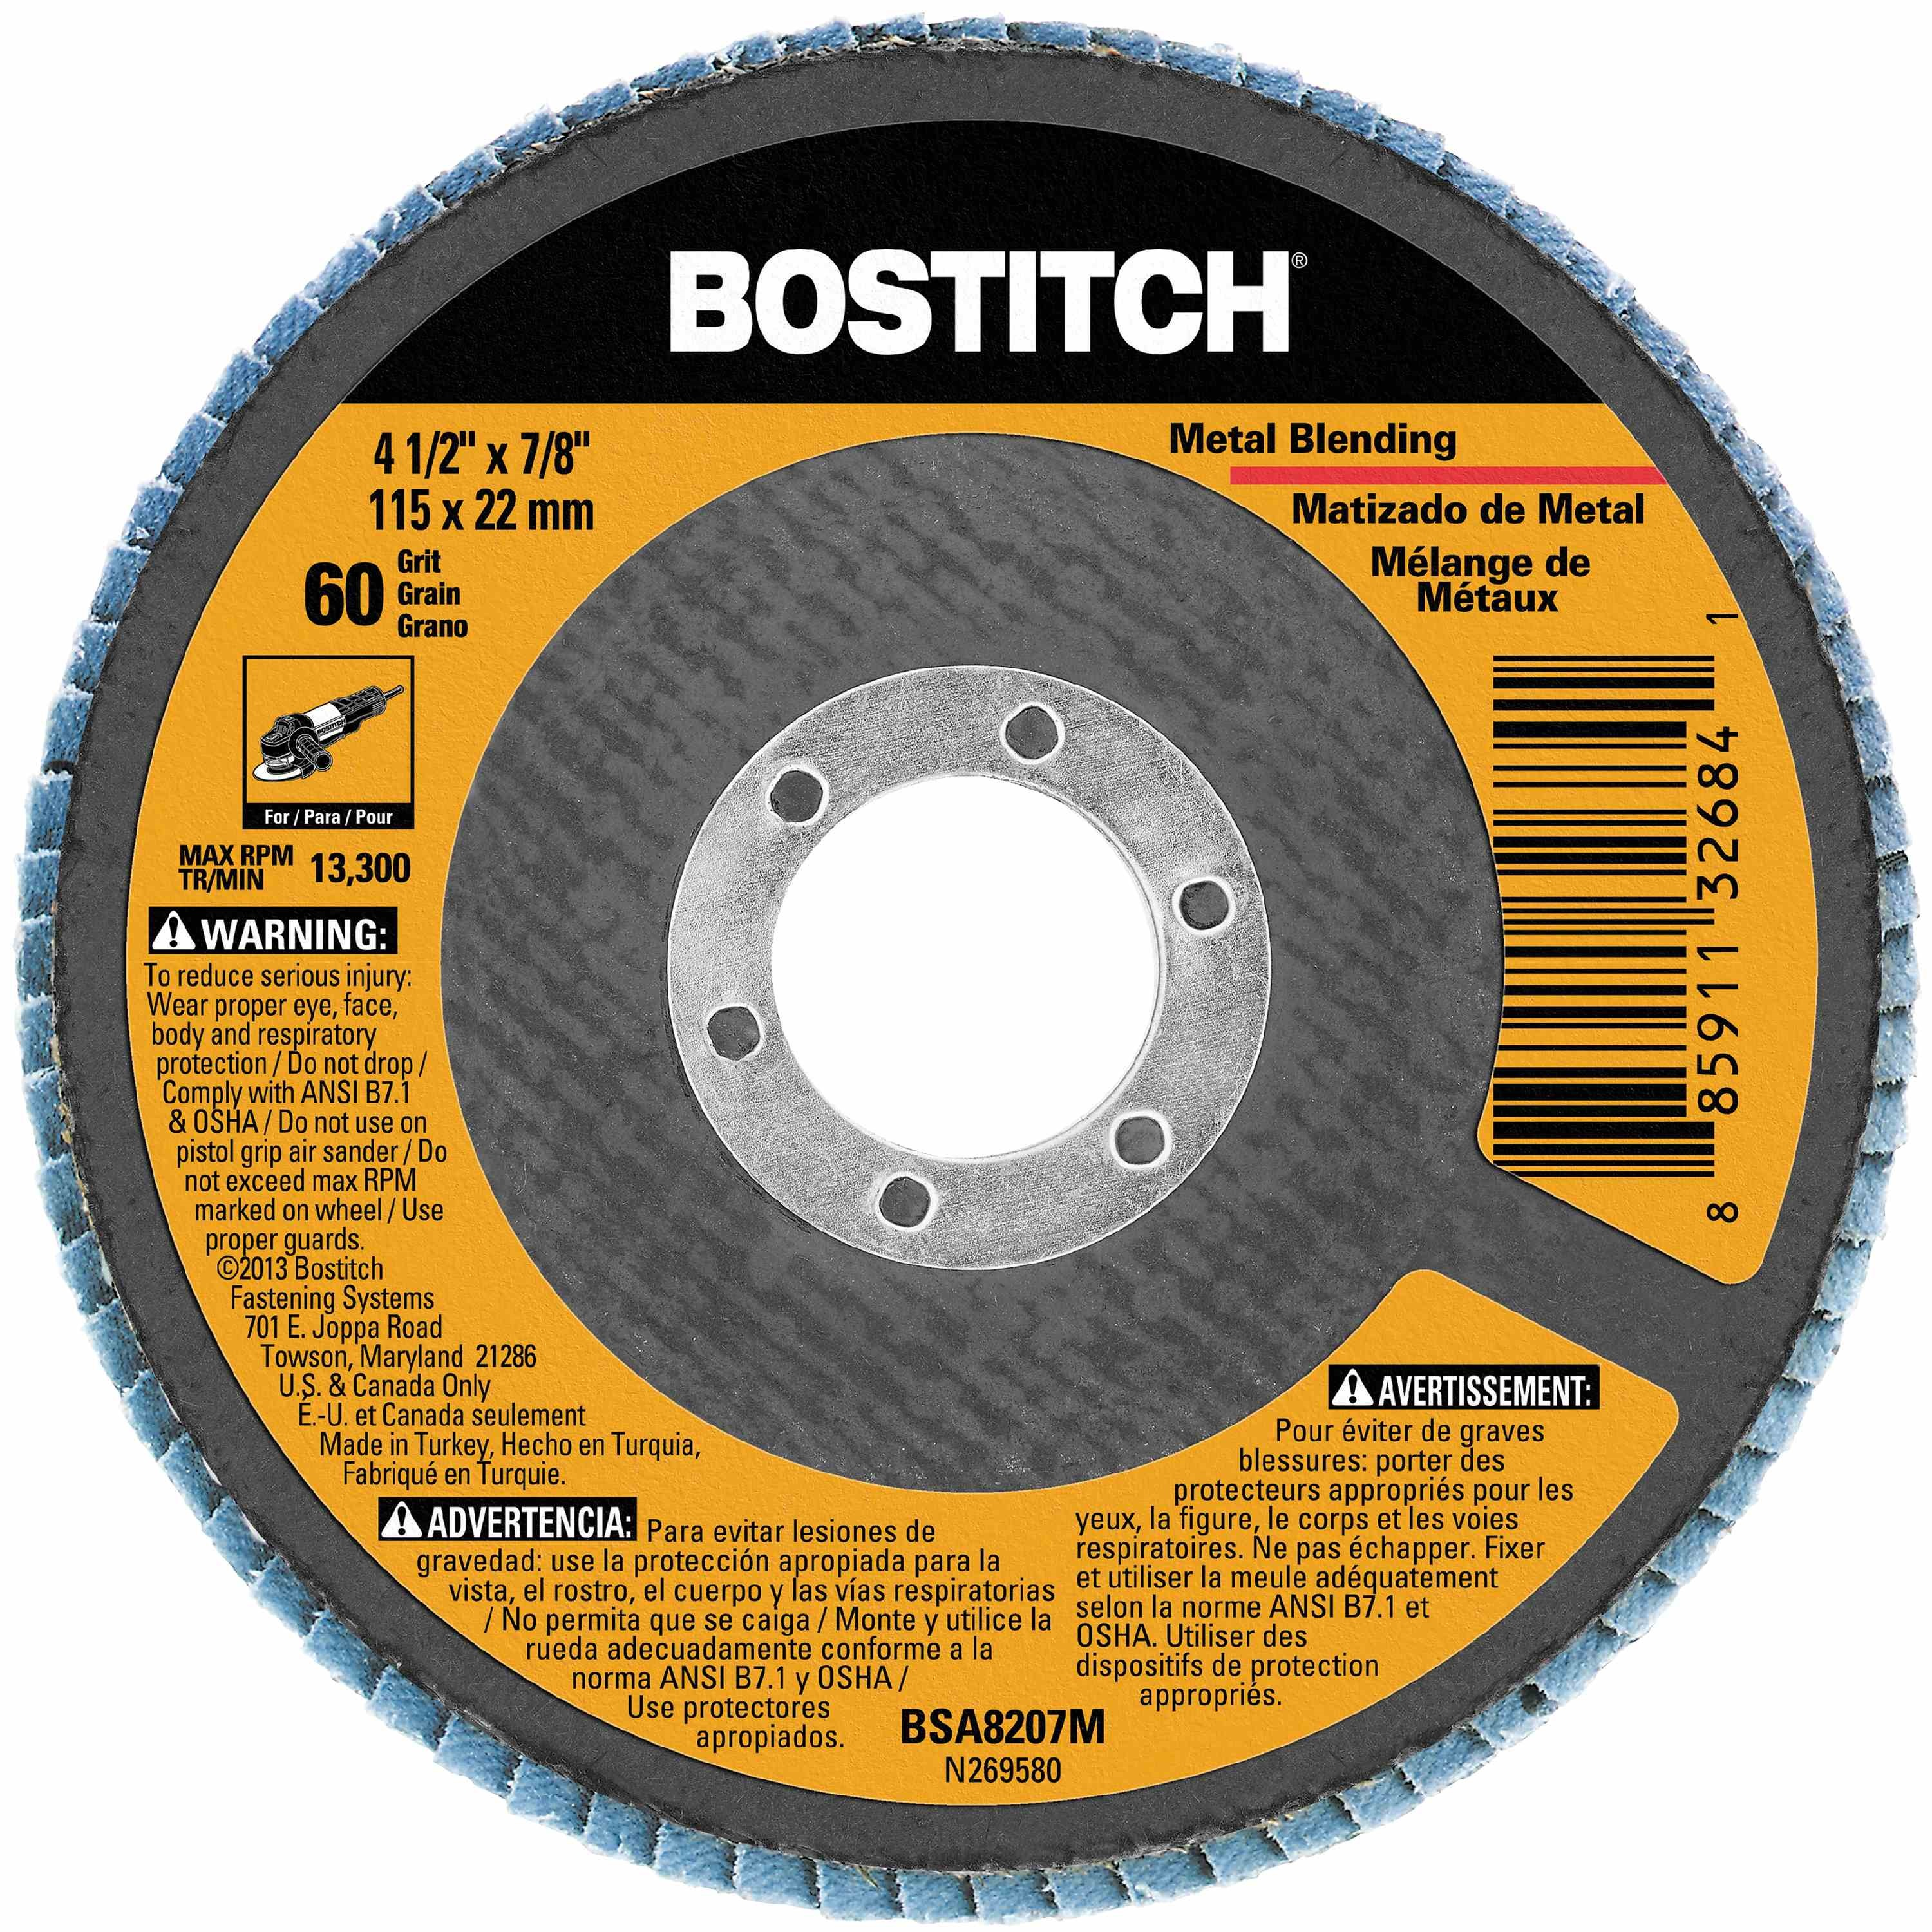 Bostitch - 412 X 78 Z60 T29 FLAP DISC - BSA8207M